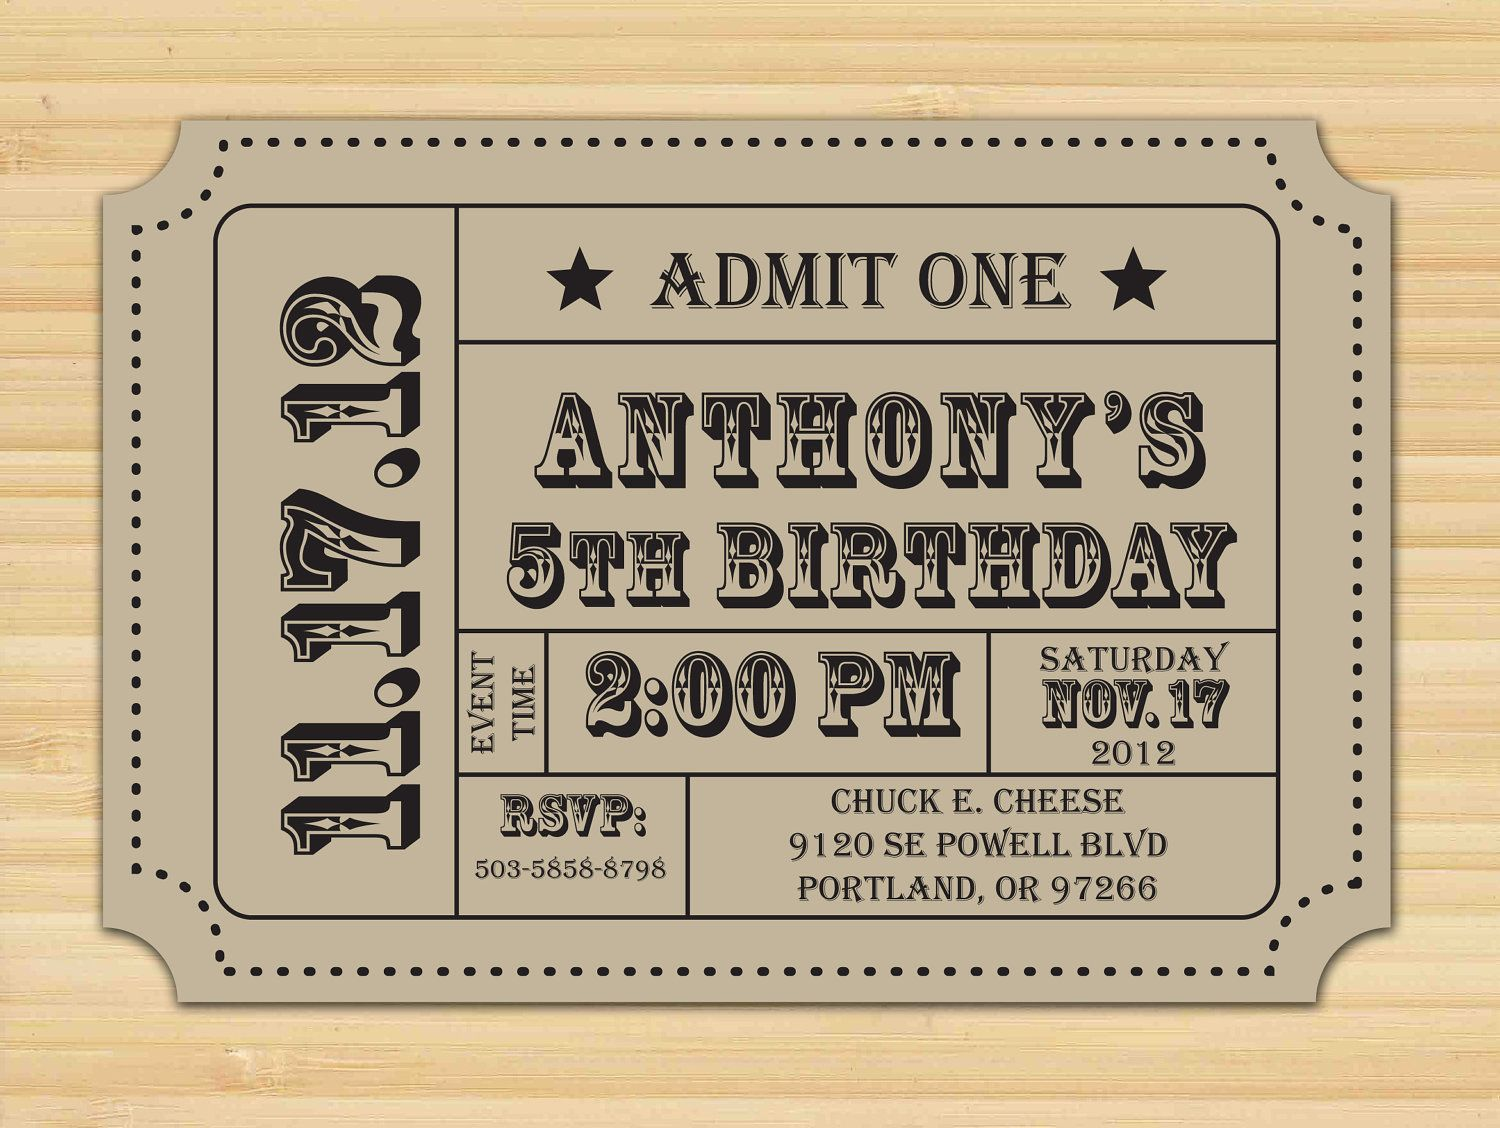 Carnival Ticket Invitation, Ticket Stub, Editable Invitation ...